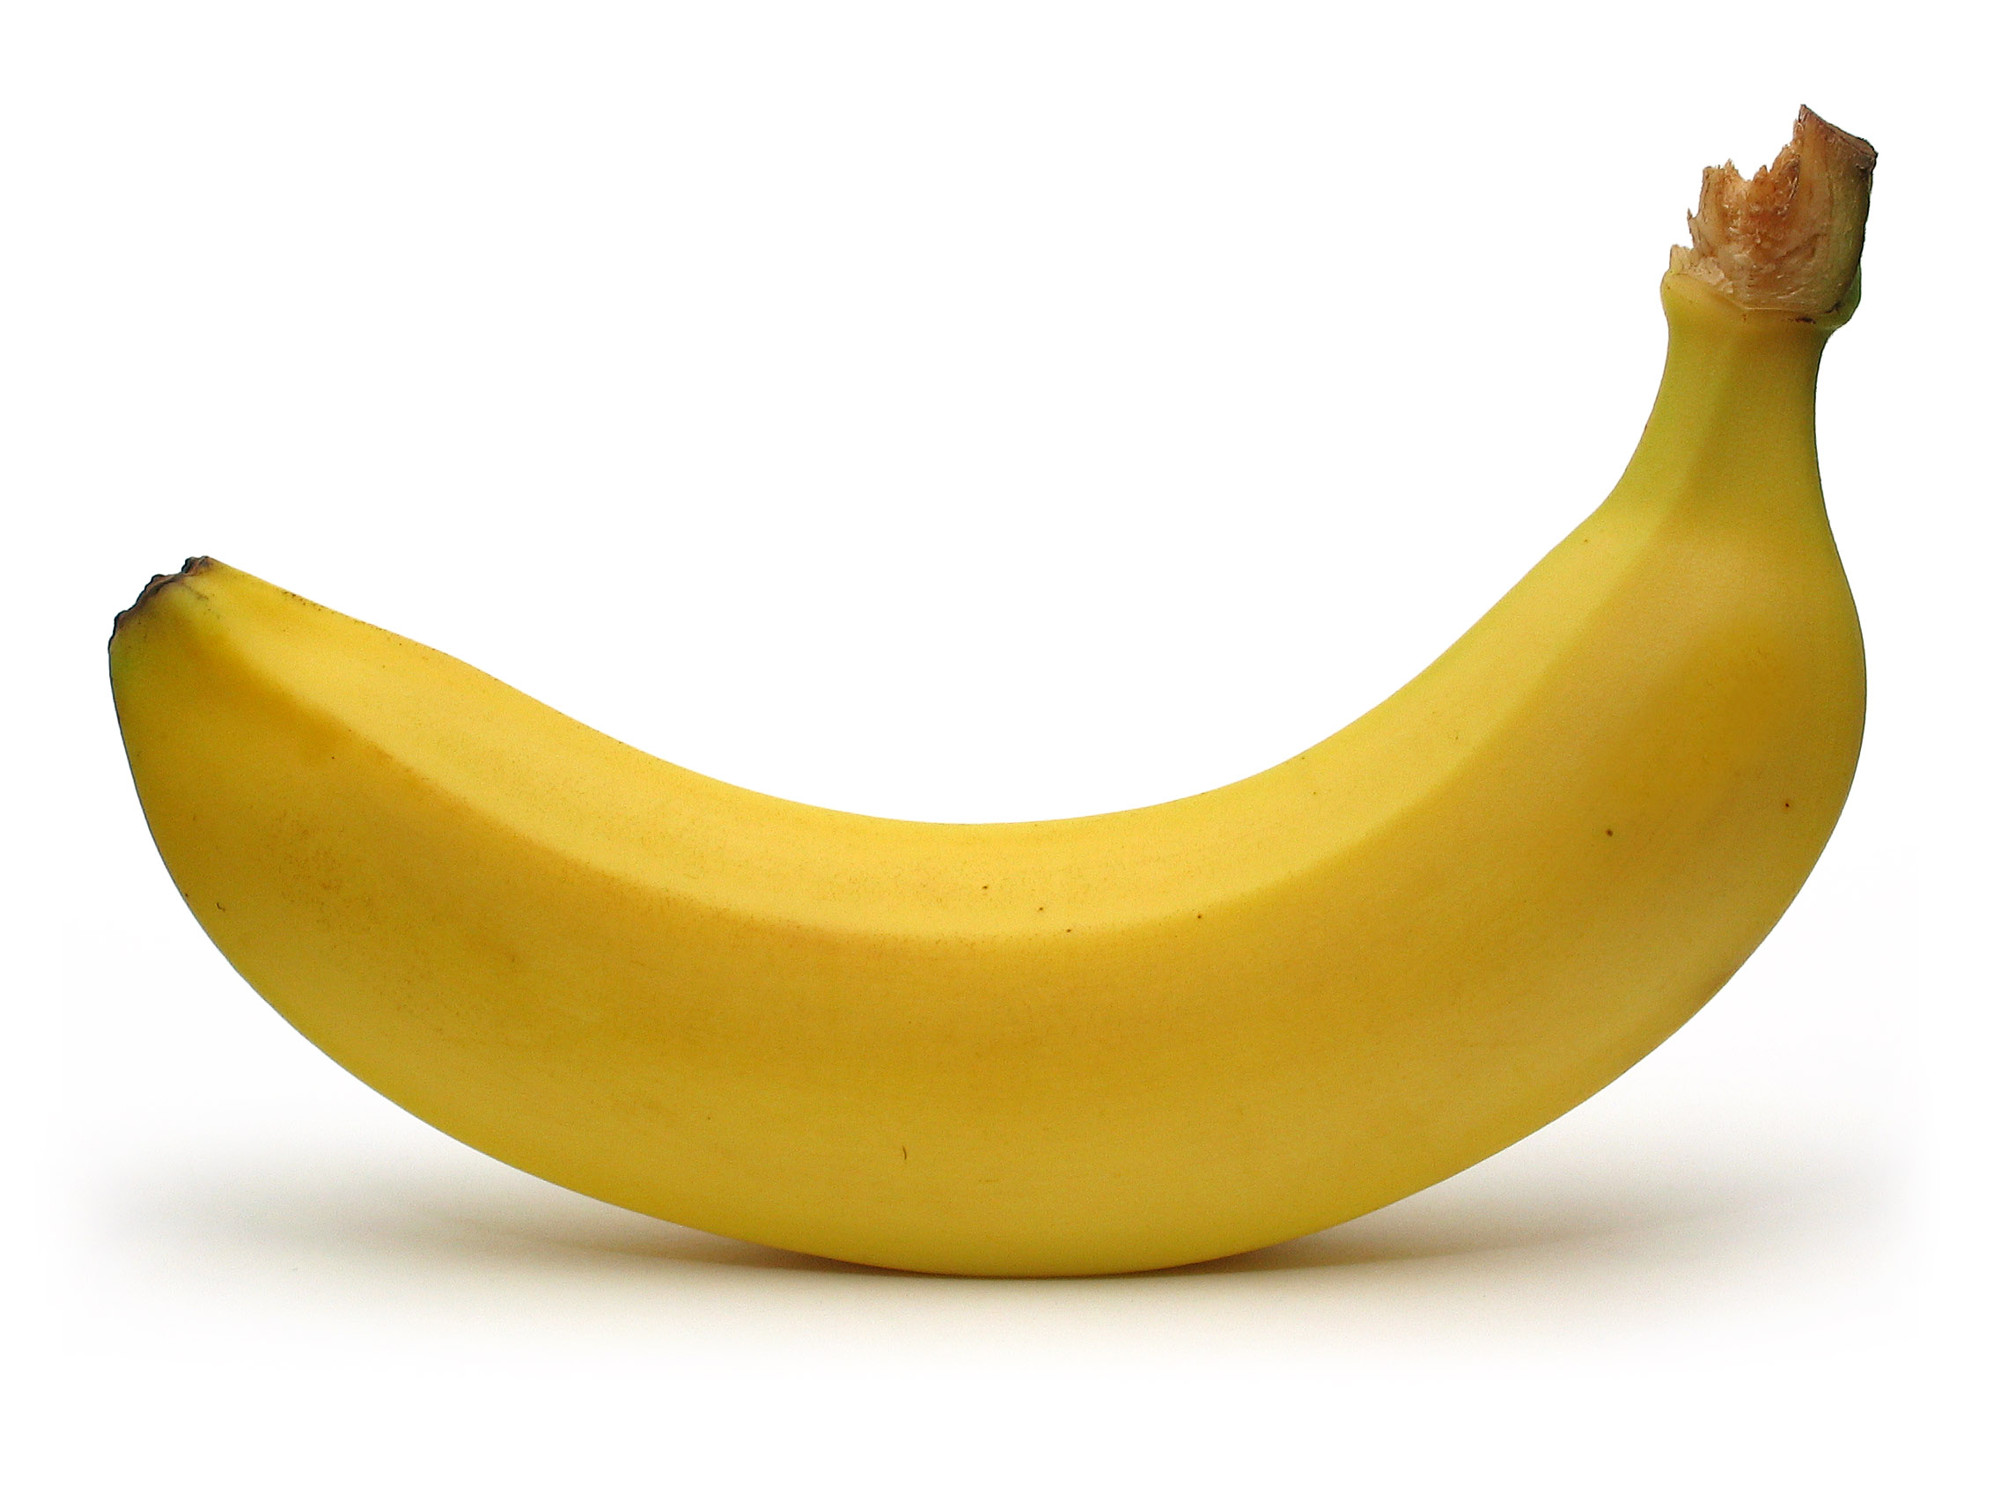 Would you eat a. Banana clipart reference